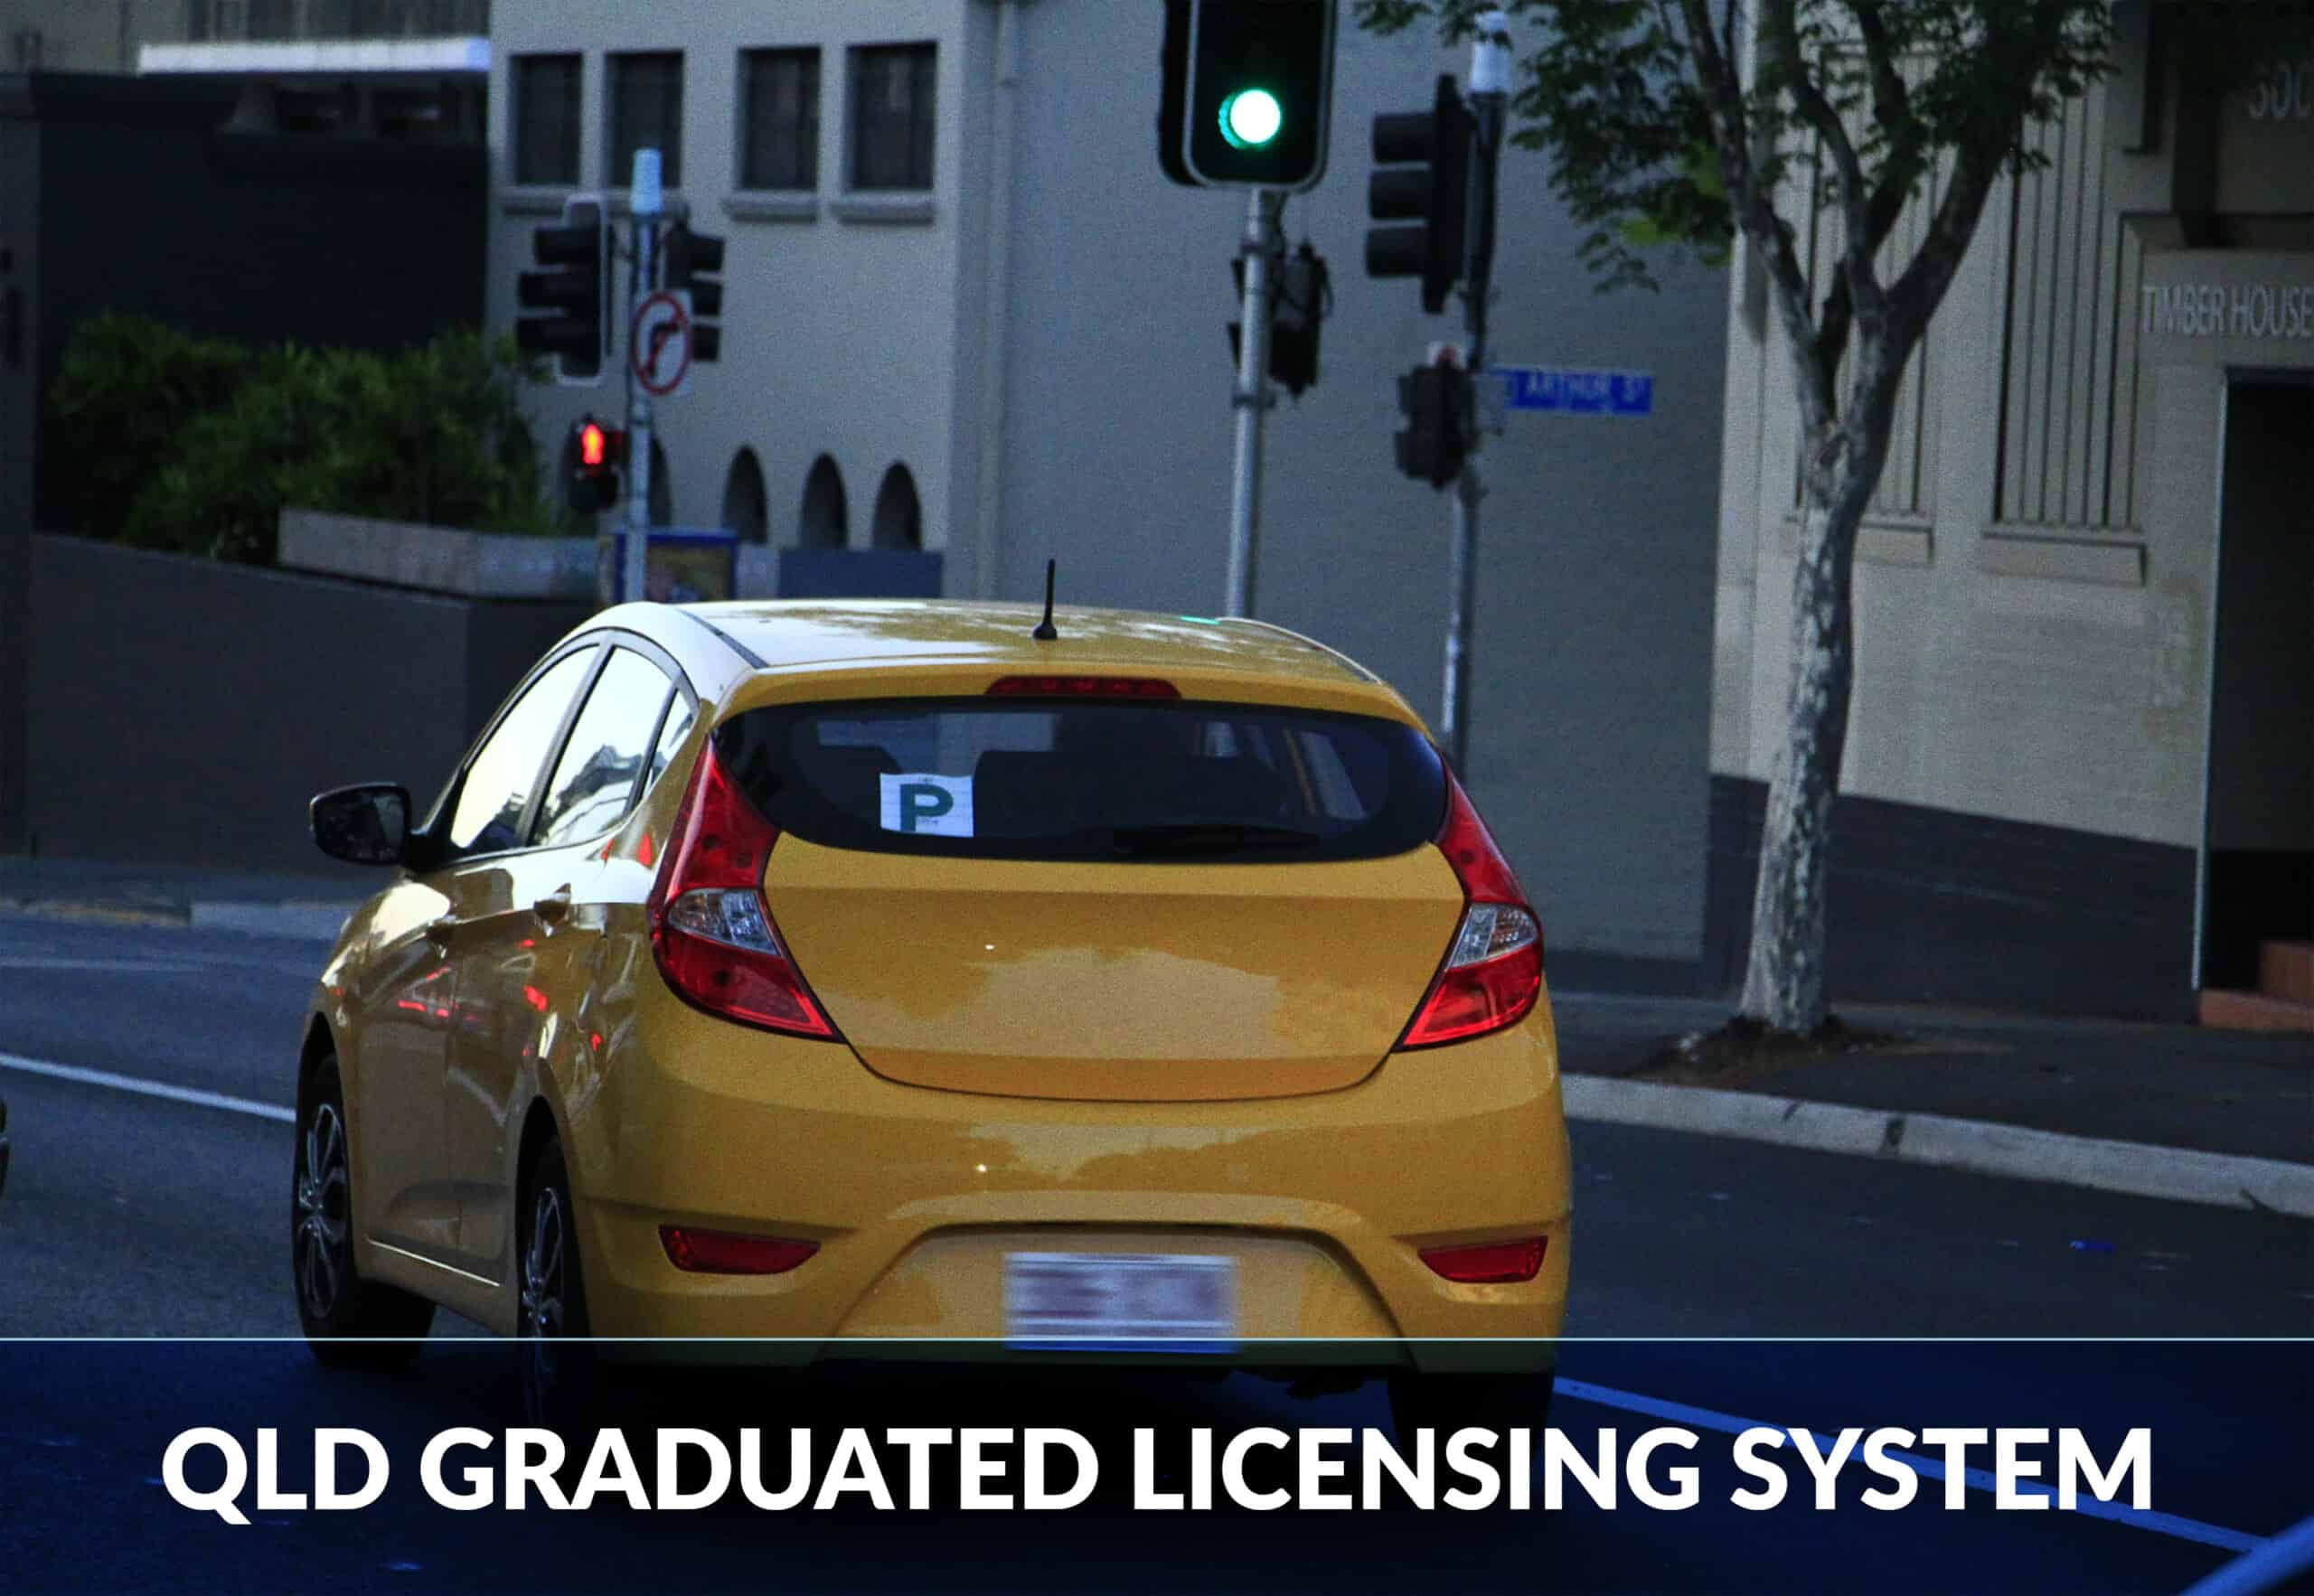 qld graduated licensing system